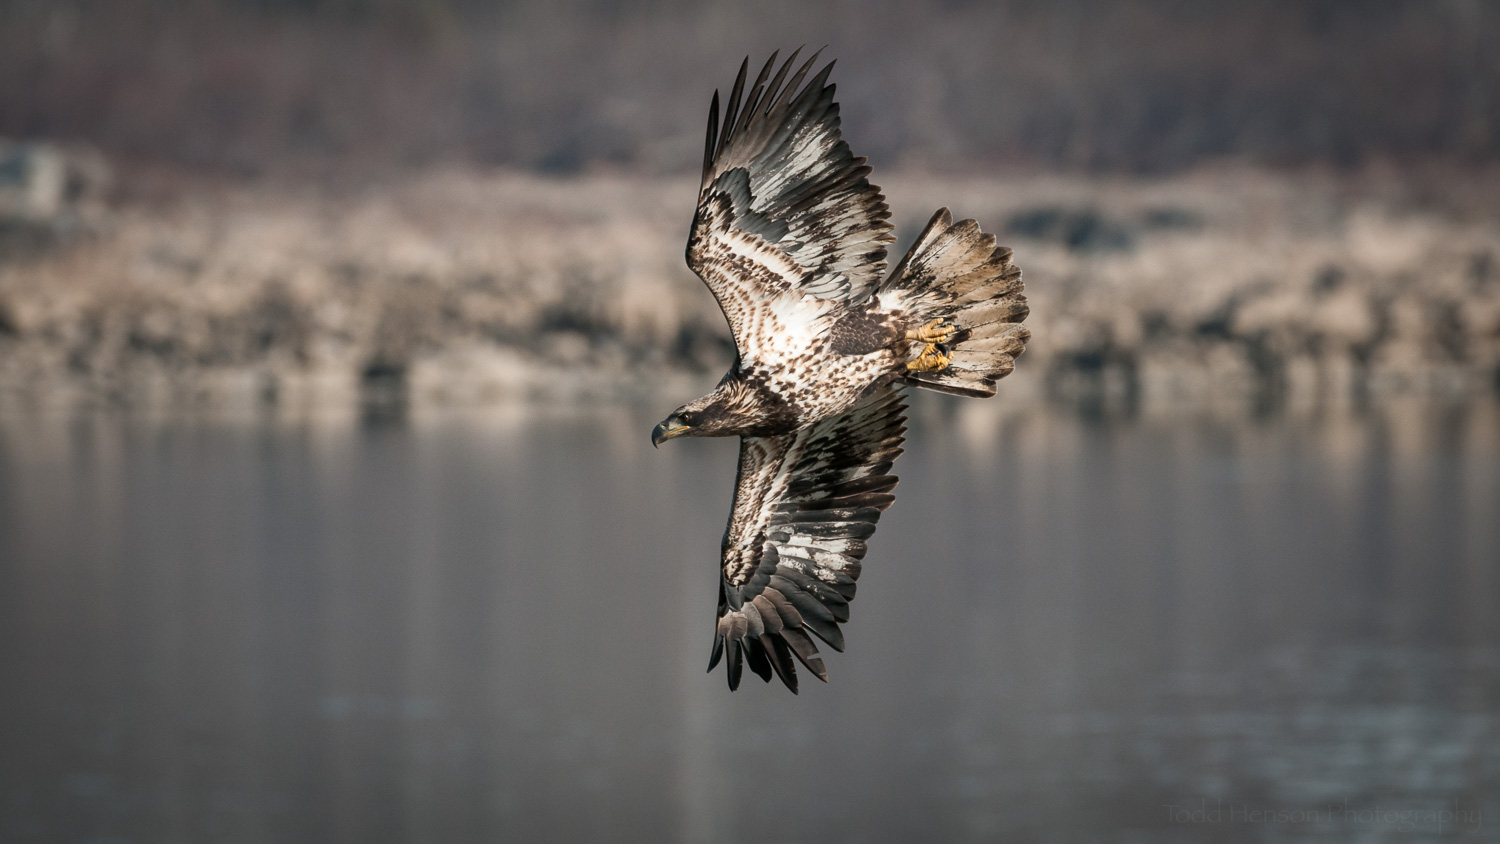 Juvenile  Bald Eagle  angling down towards a fish in the river